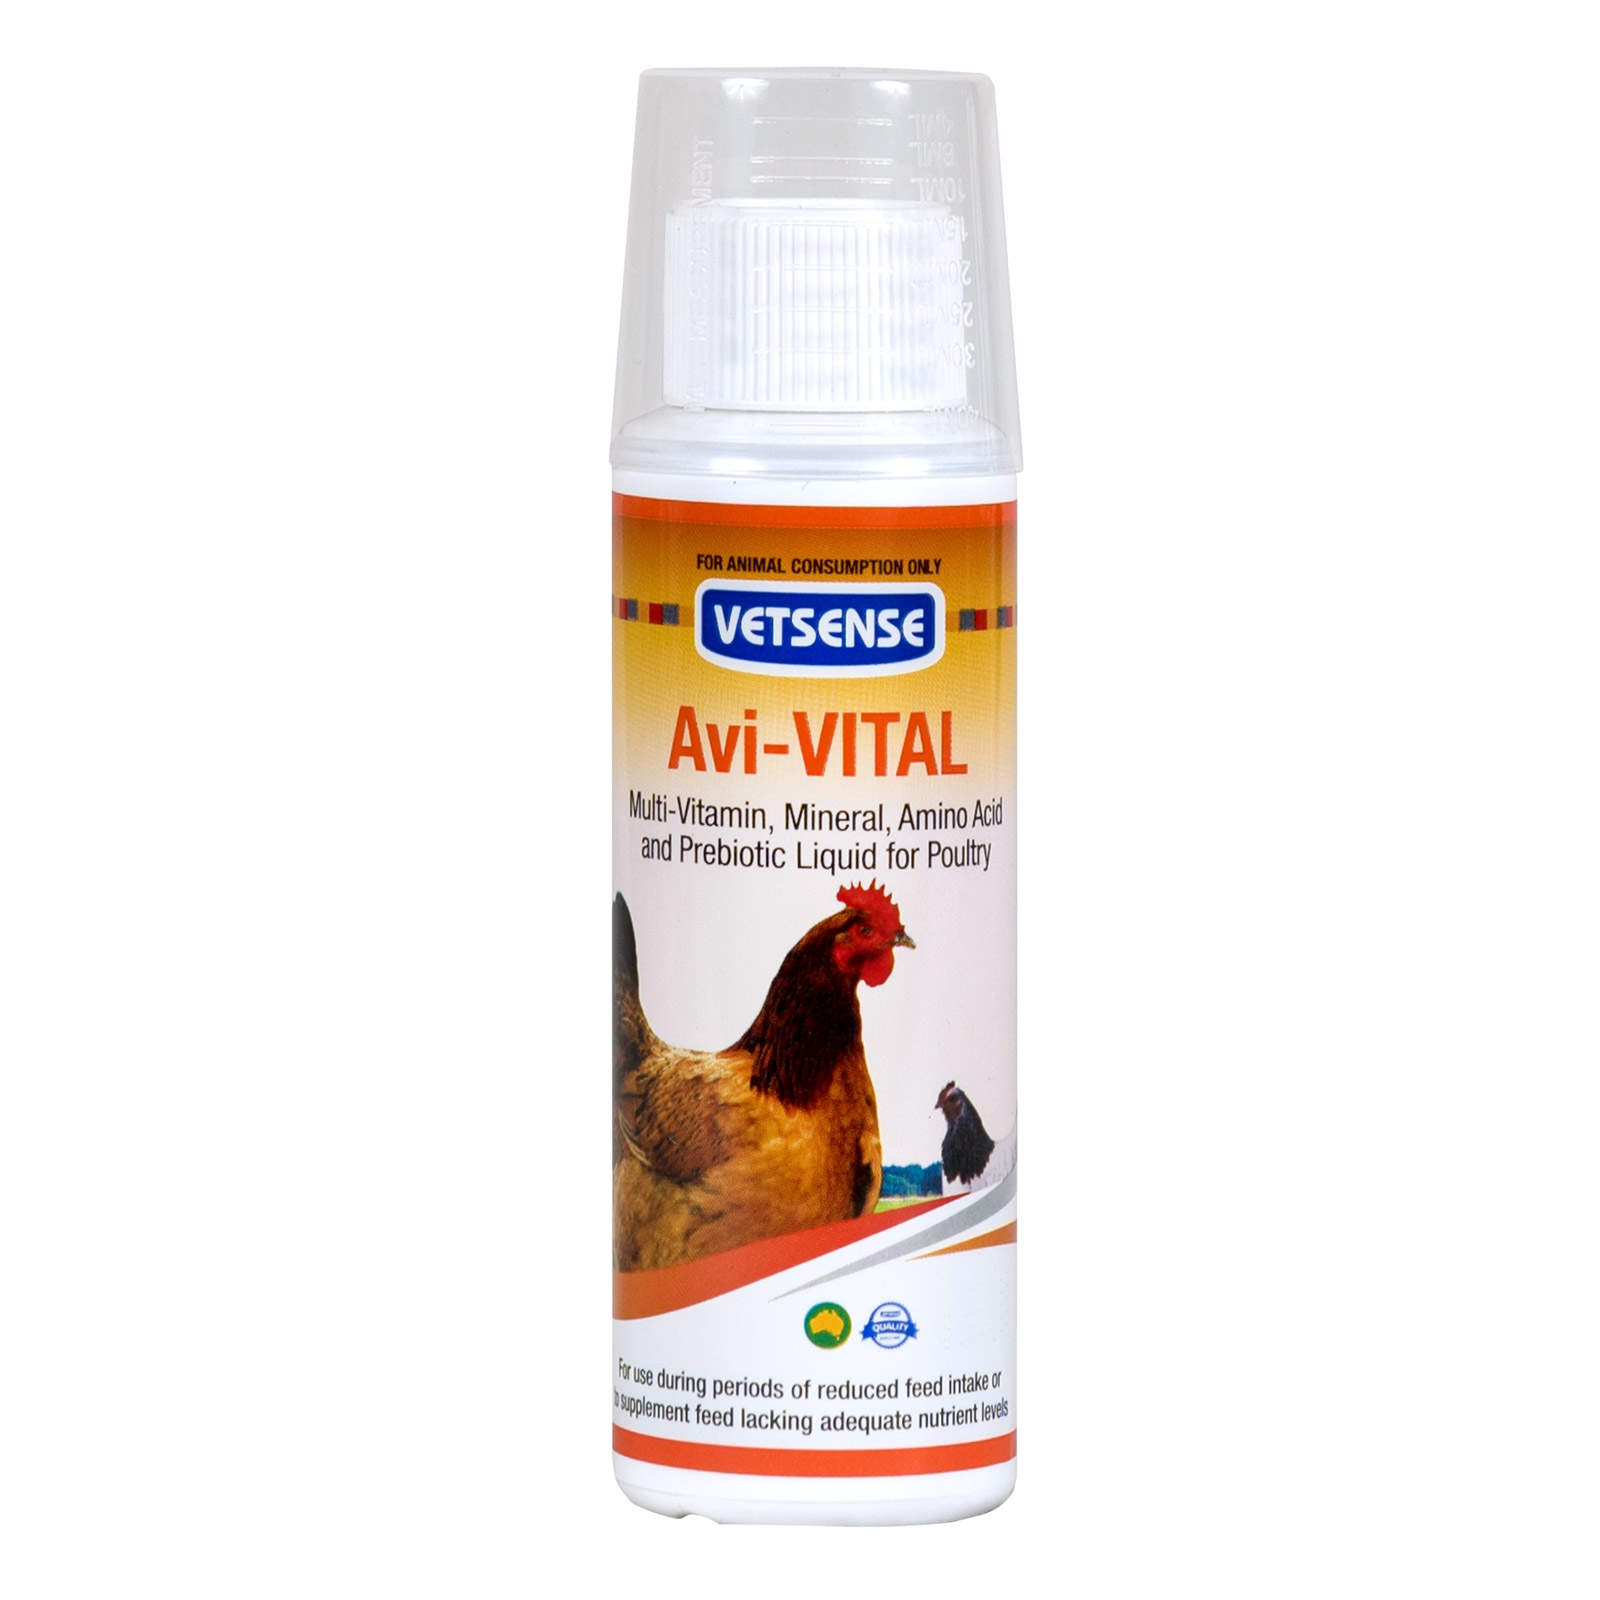 Vetsense Avi-Vital for Poultry